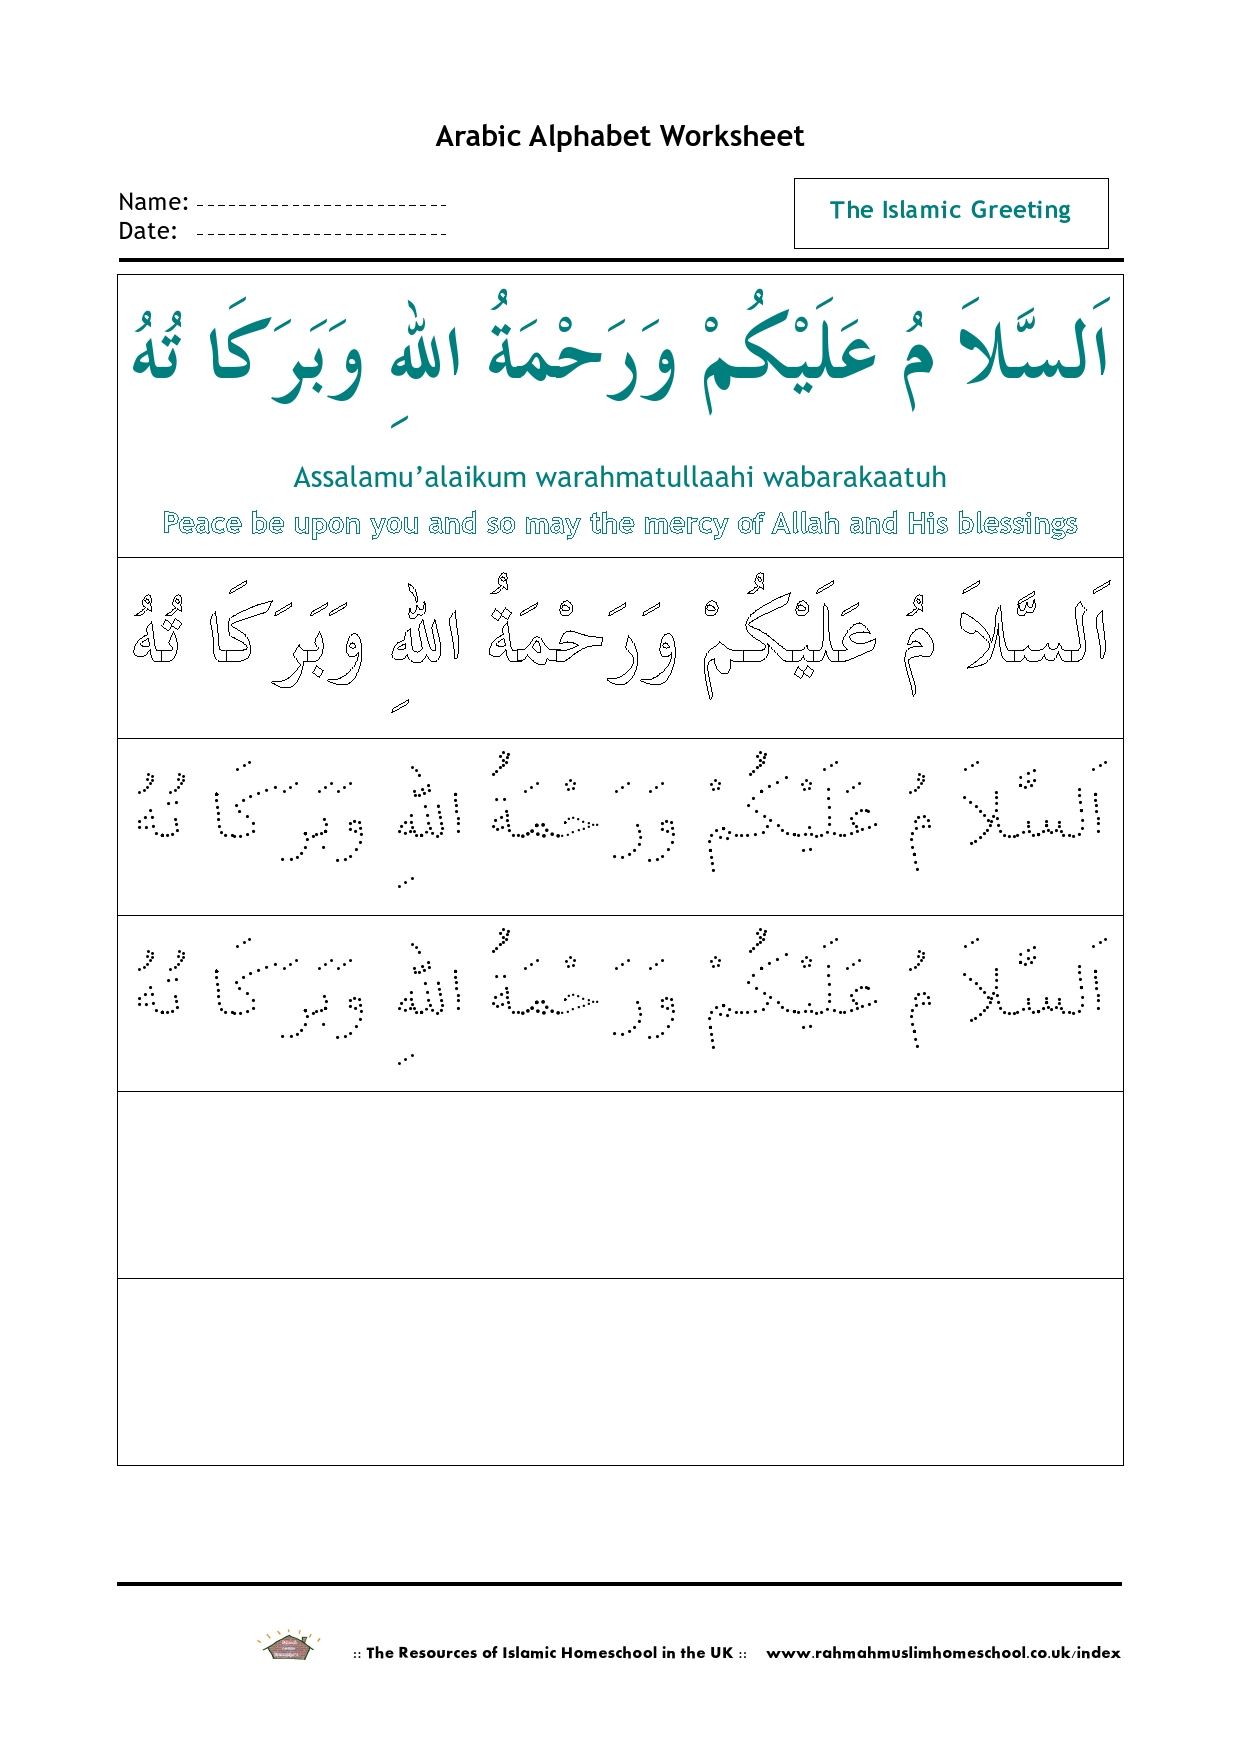 Free Arabic Alphabet Worksheet The Islamic Greeting